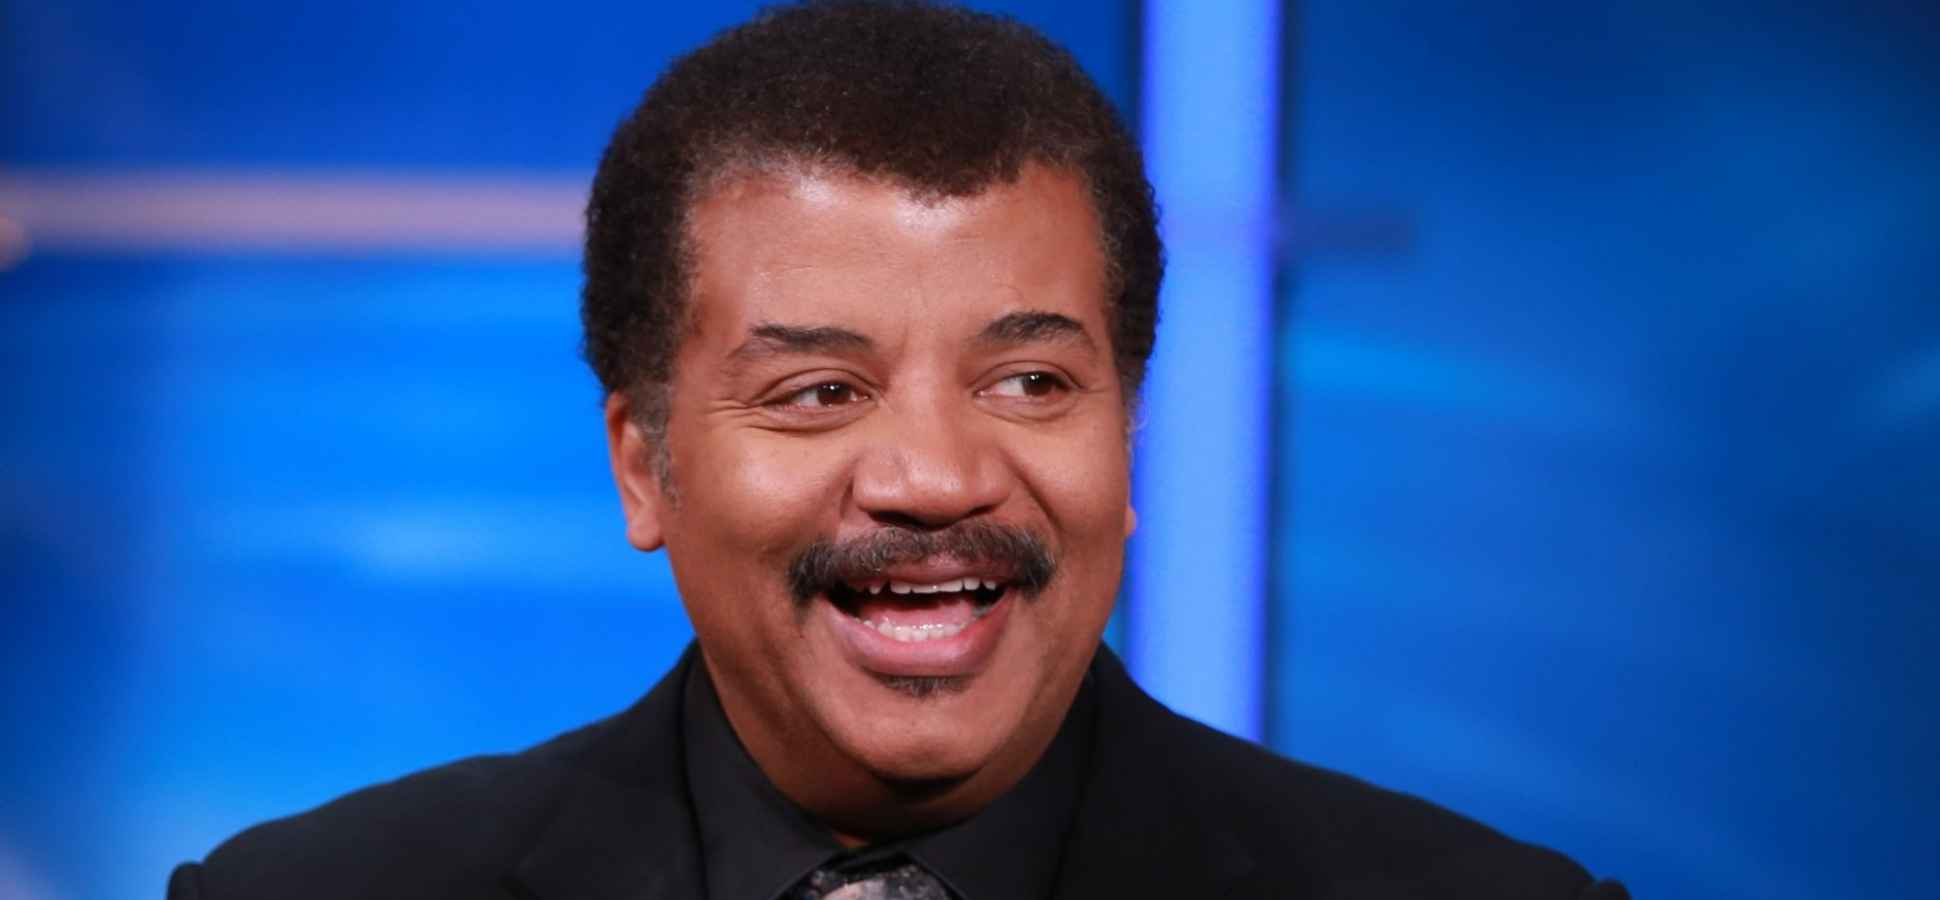 Astrophysicist Neil deGrasse Tyson Explains the Most Important Communication Tip That Helped Him in His Career